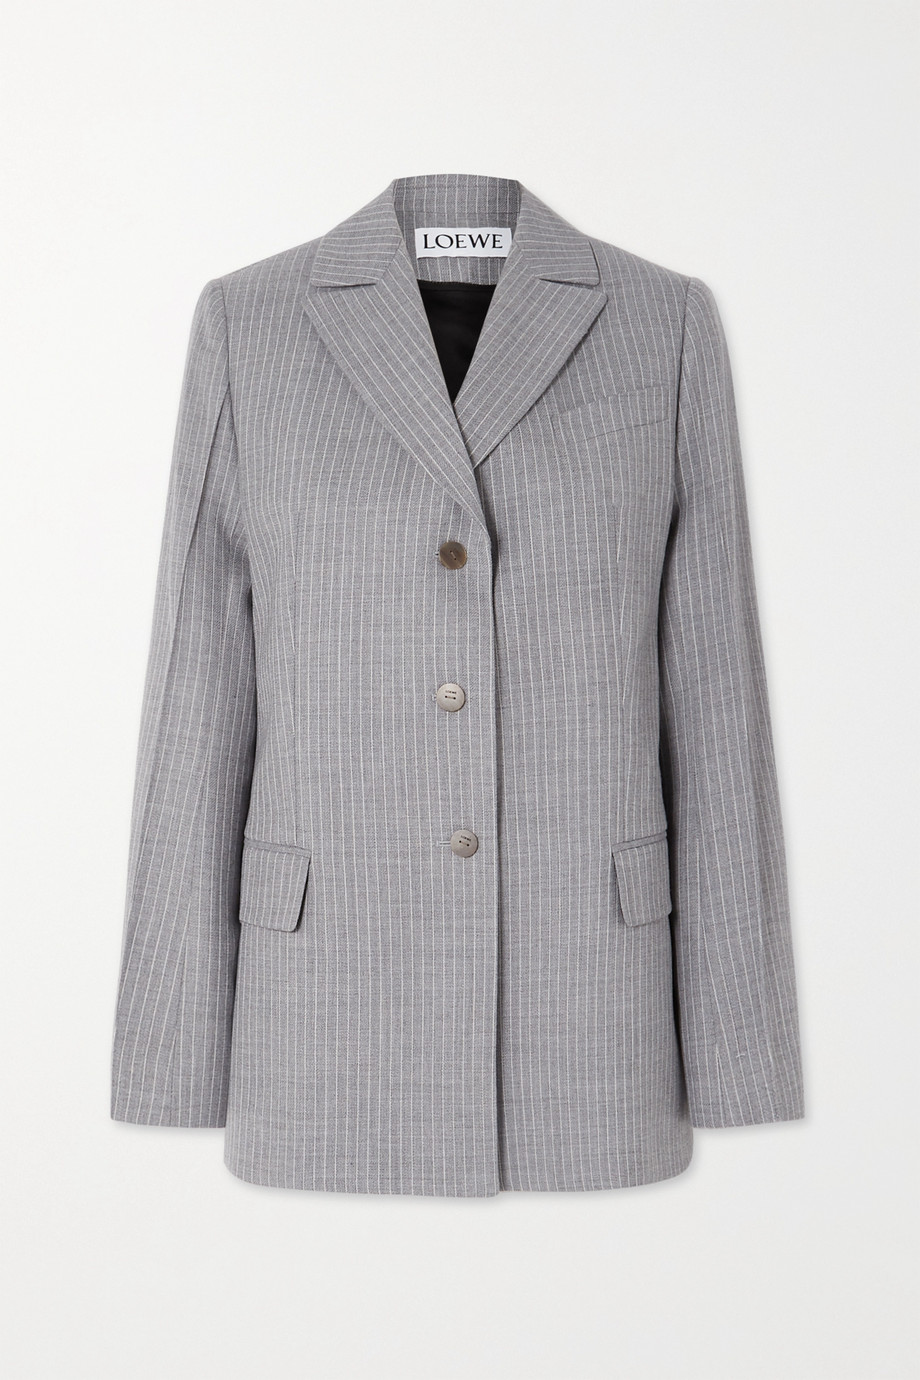 Loewe Tie-detailed pinstriped wool and silk-blend blazer